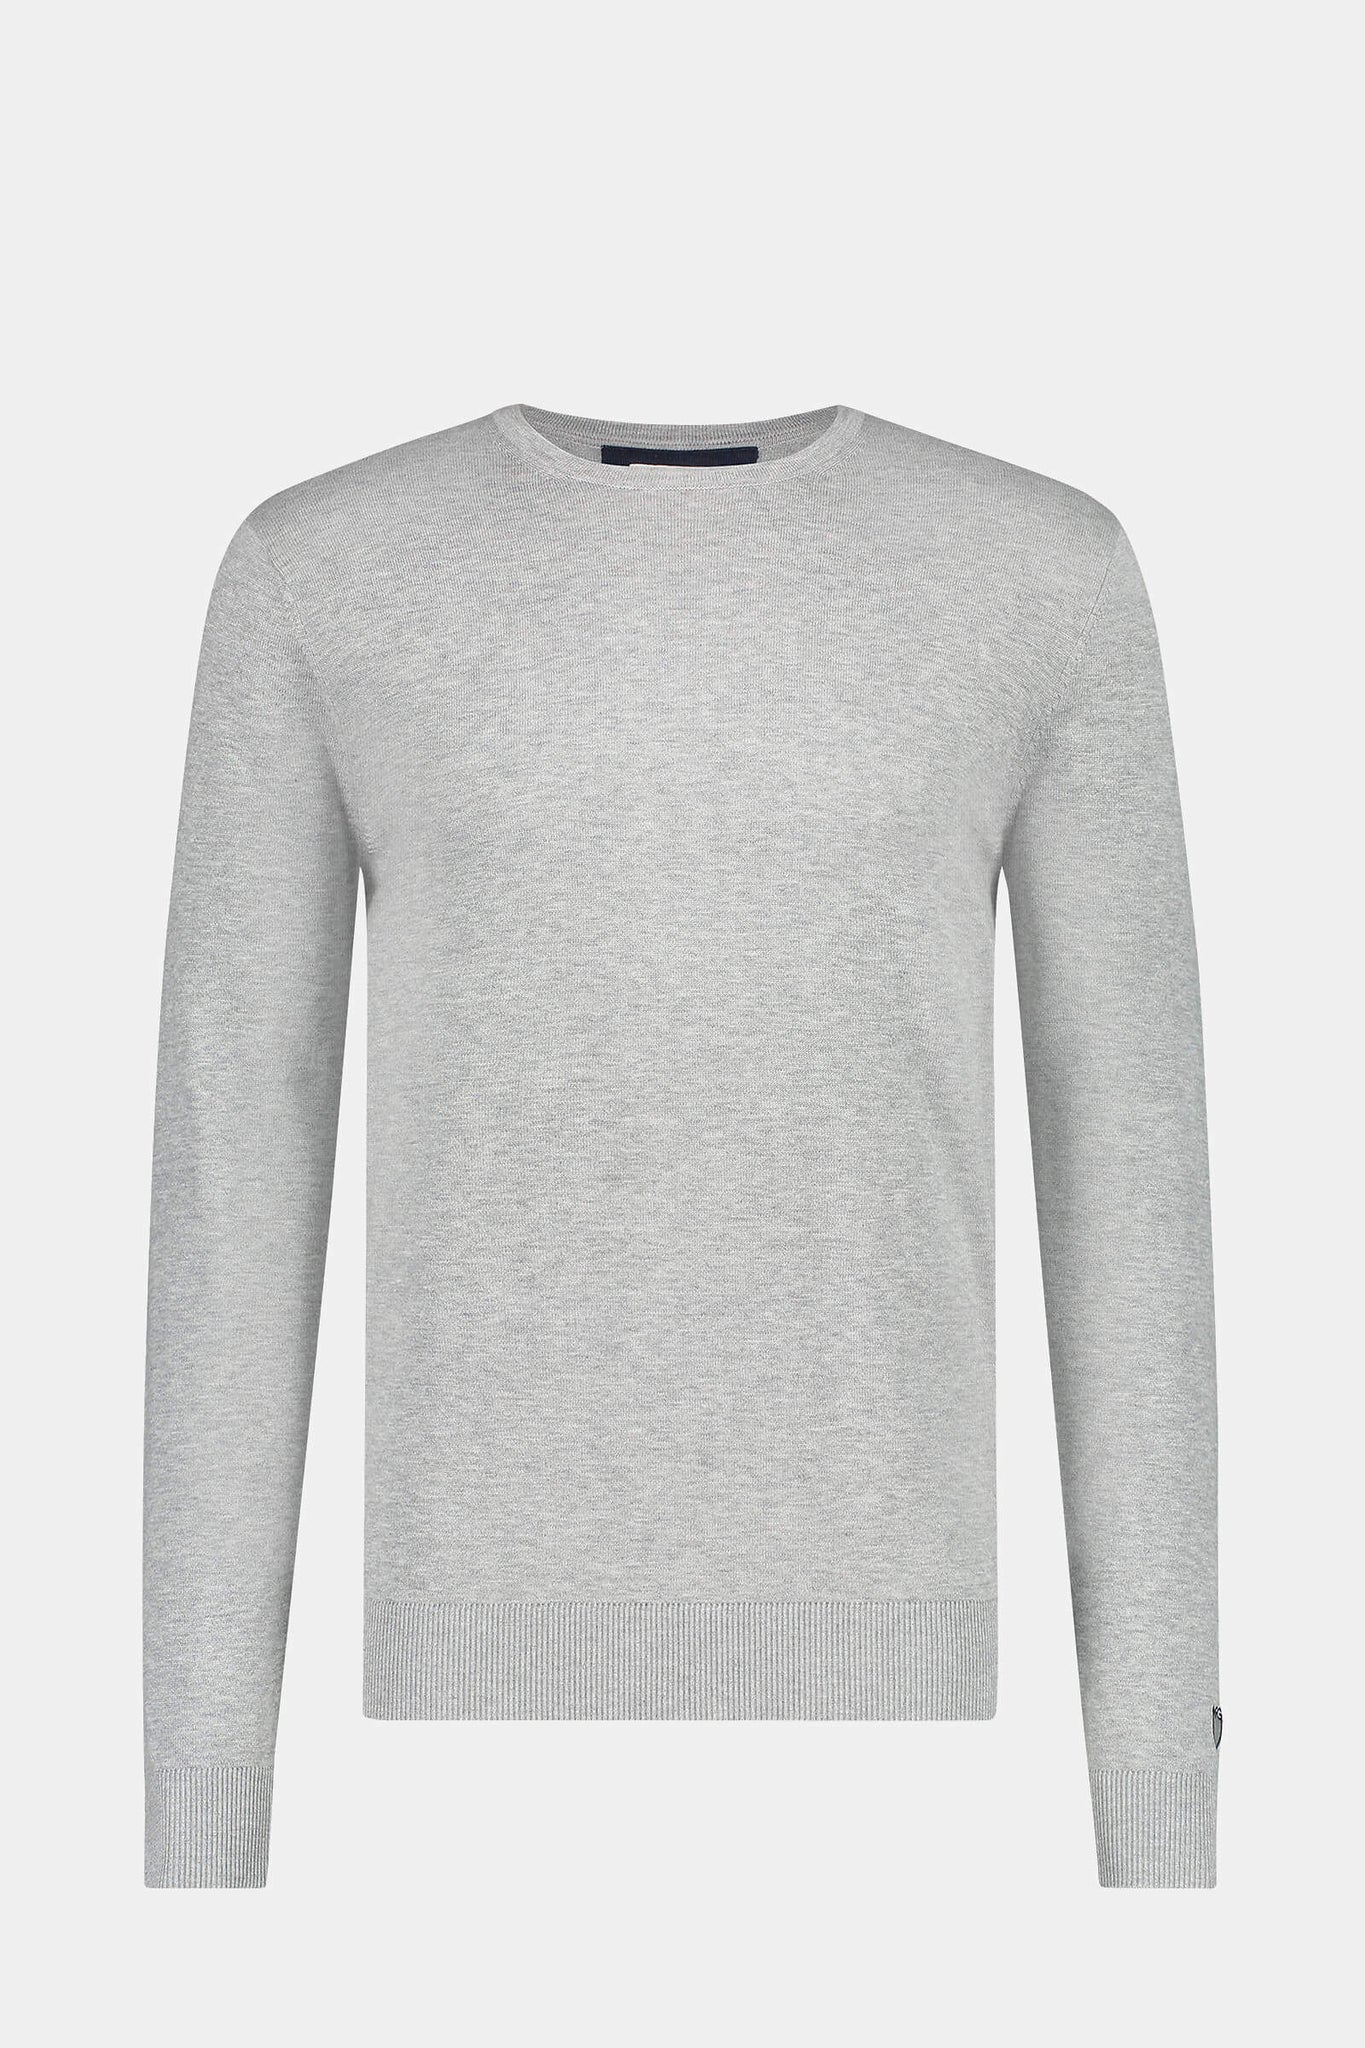 McG Crew neck sweater in cotton silk blend